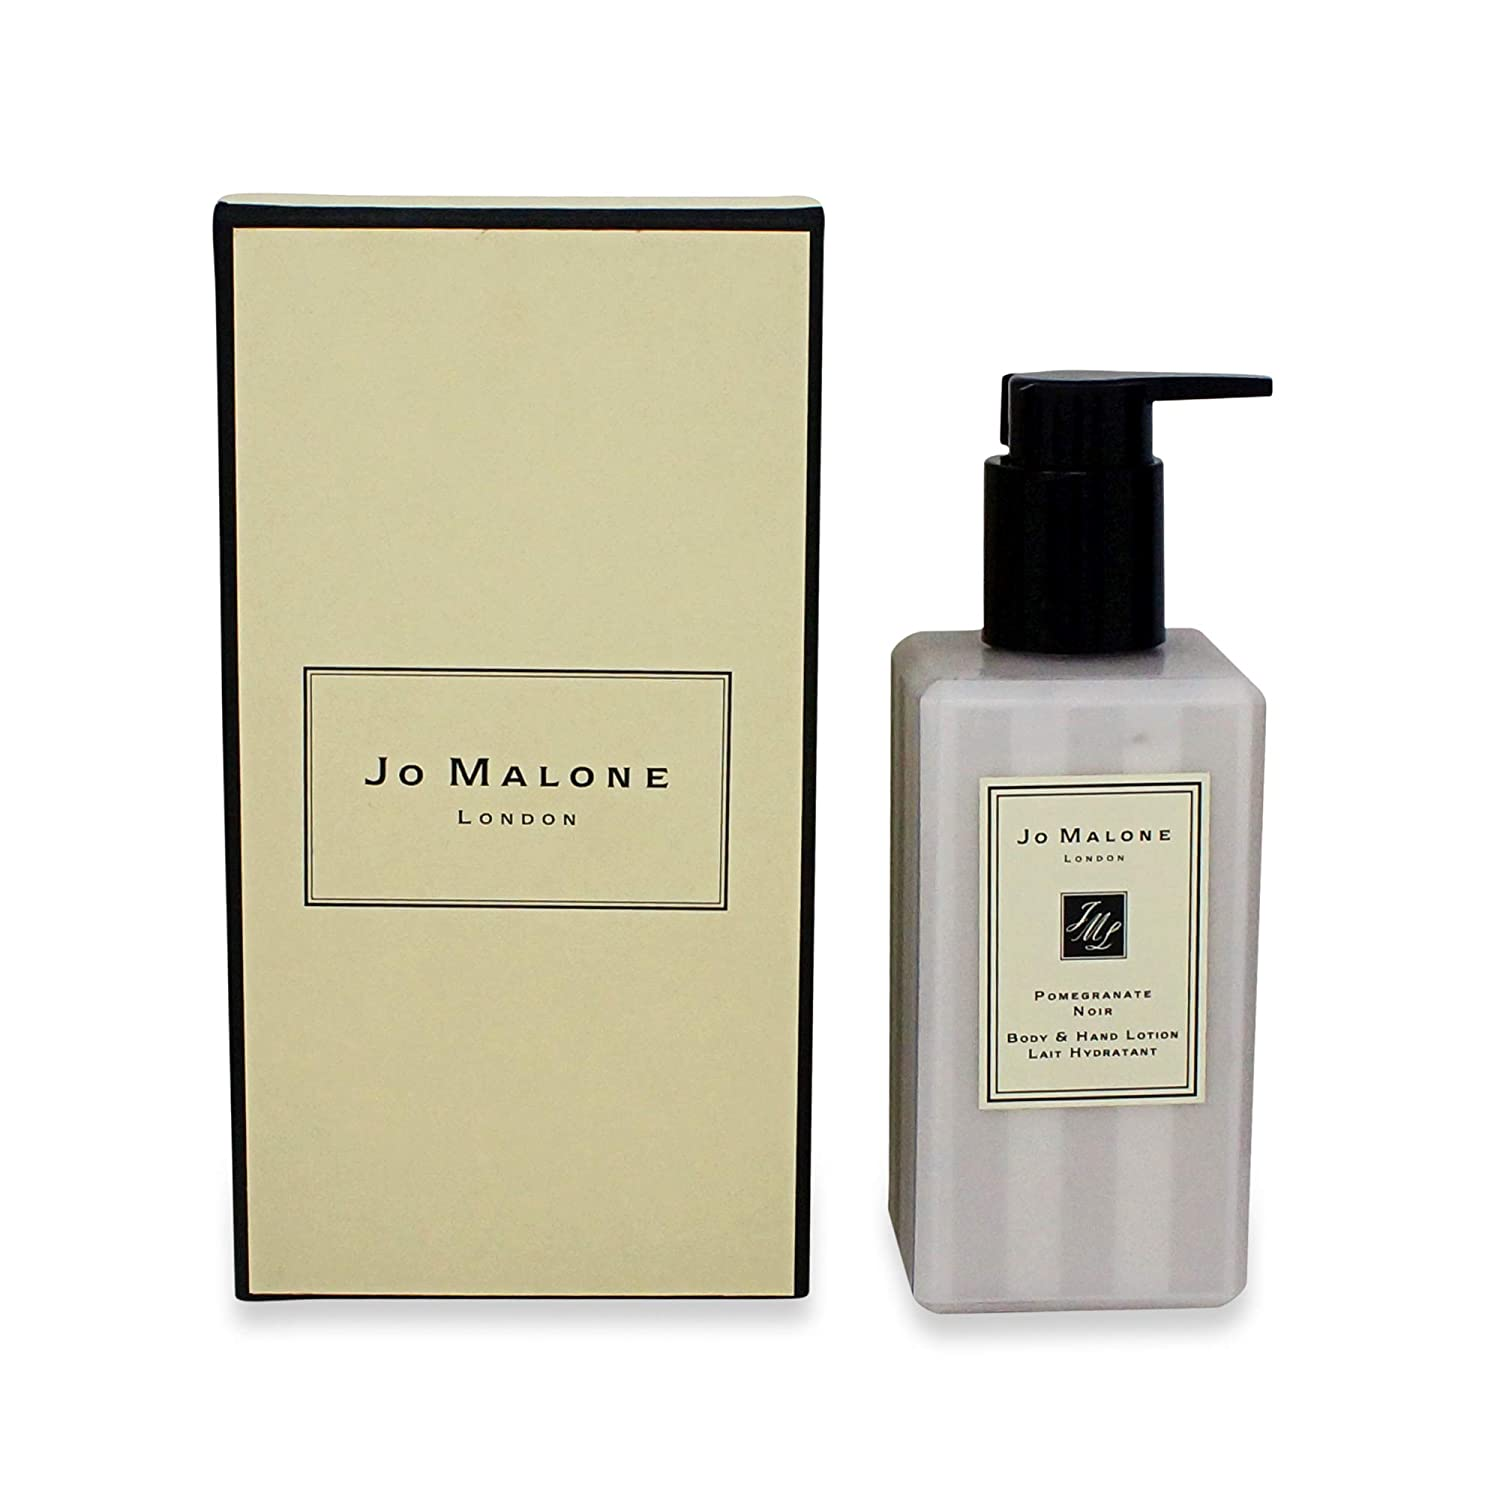 Jo Malone Pomegranate Noir Body & Hand Lotion 250ml/8.5oz